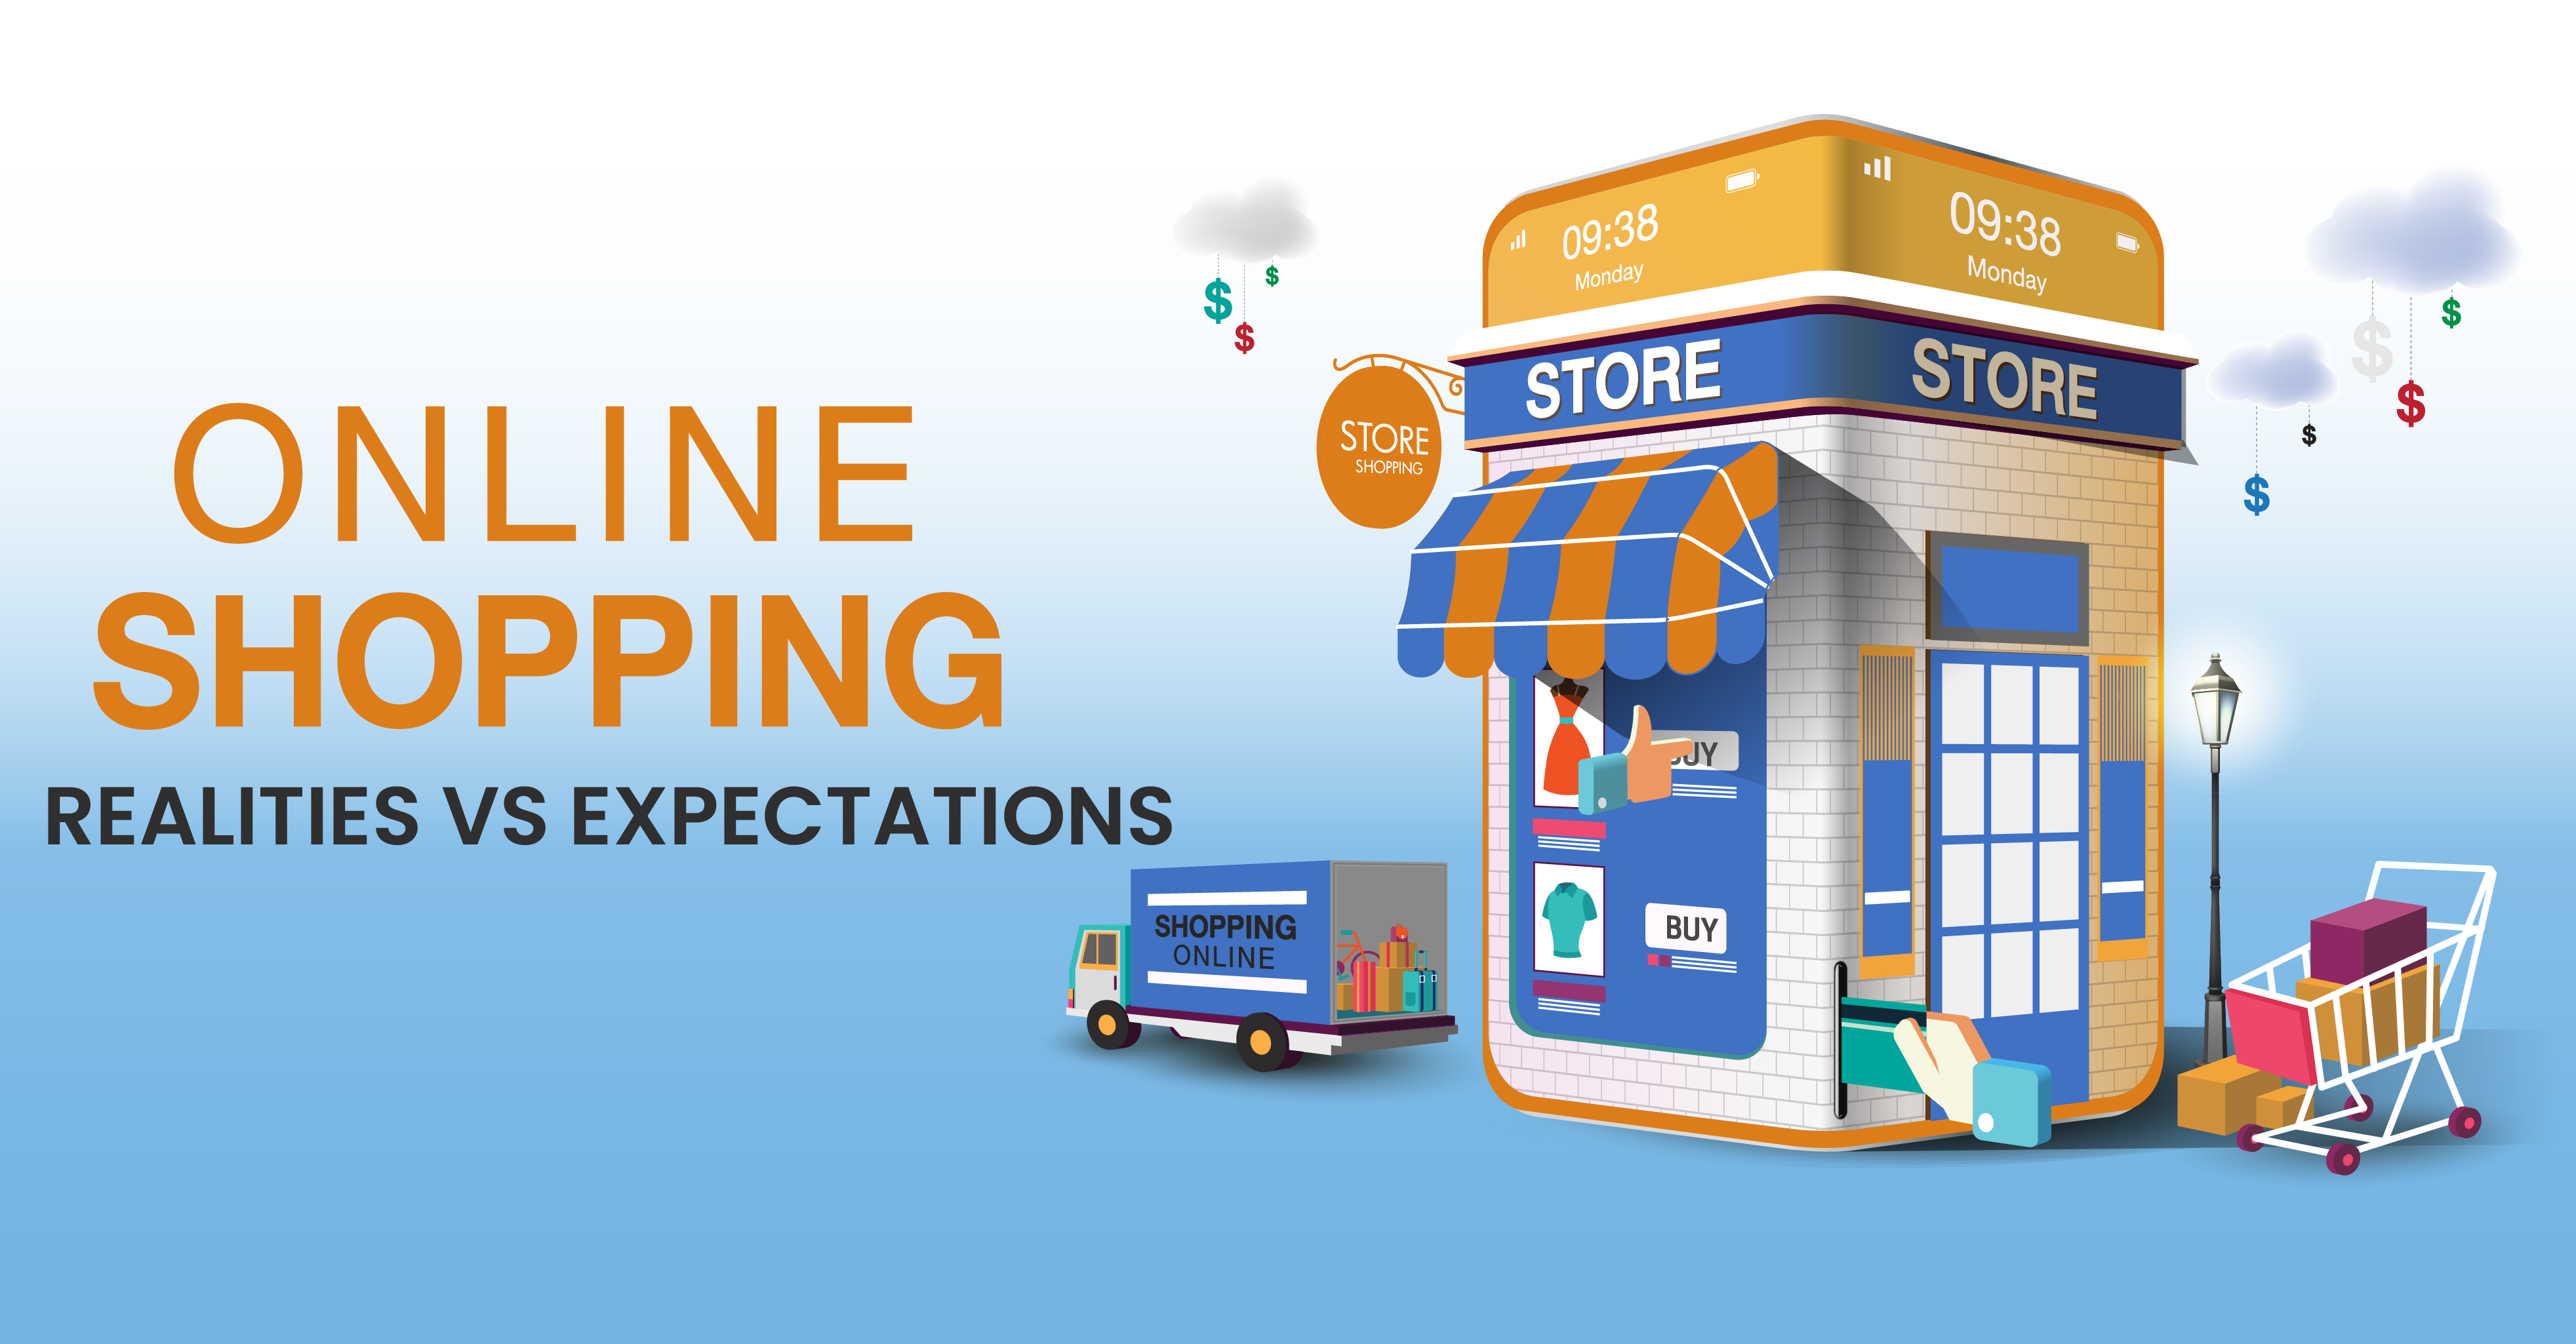 online-shopping-realities-vs-expectations